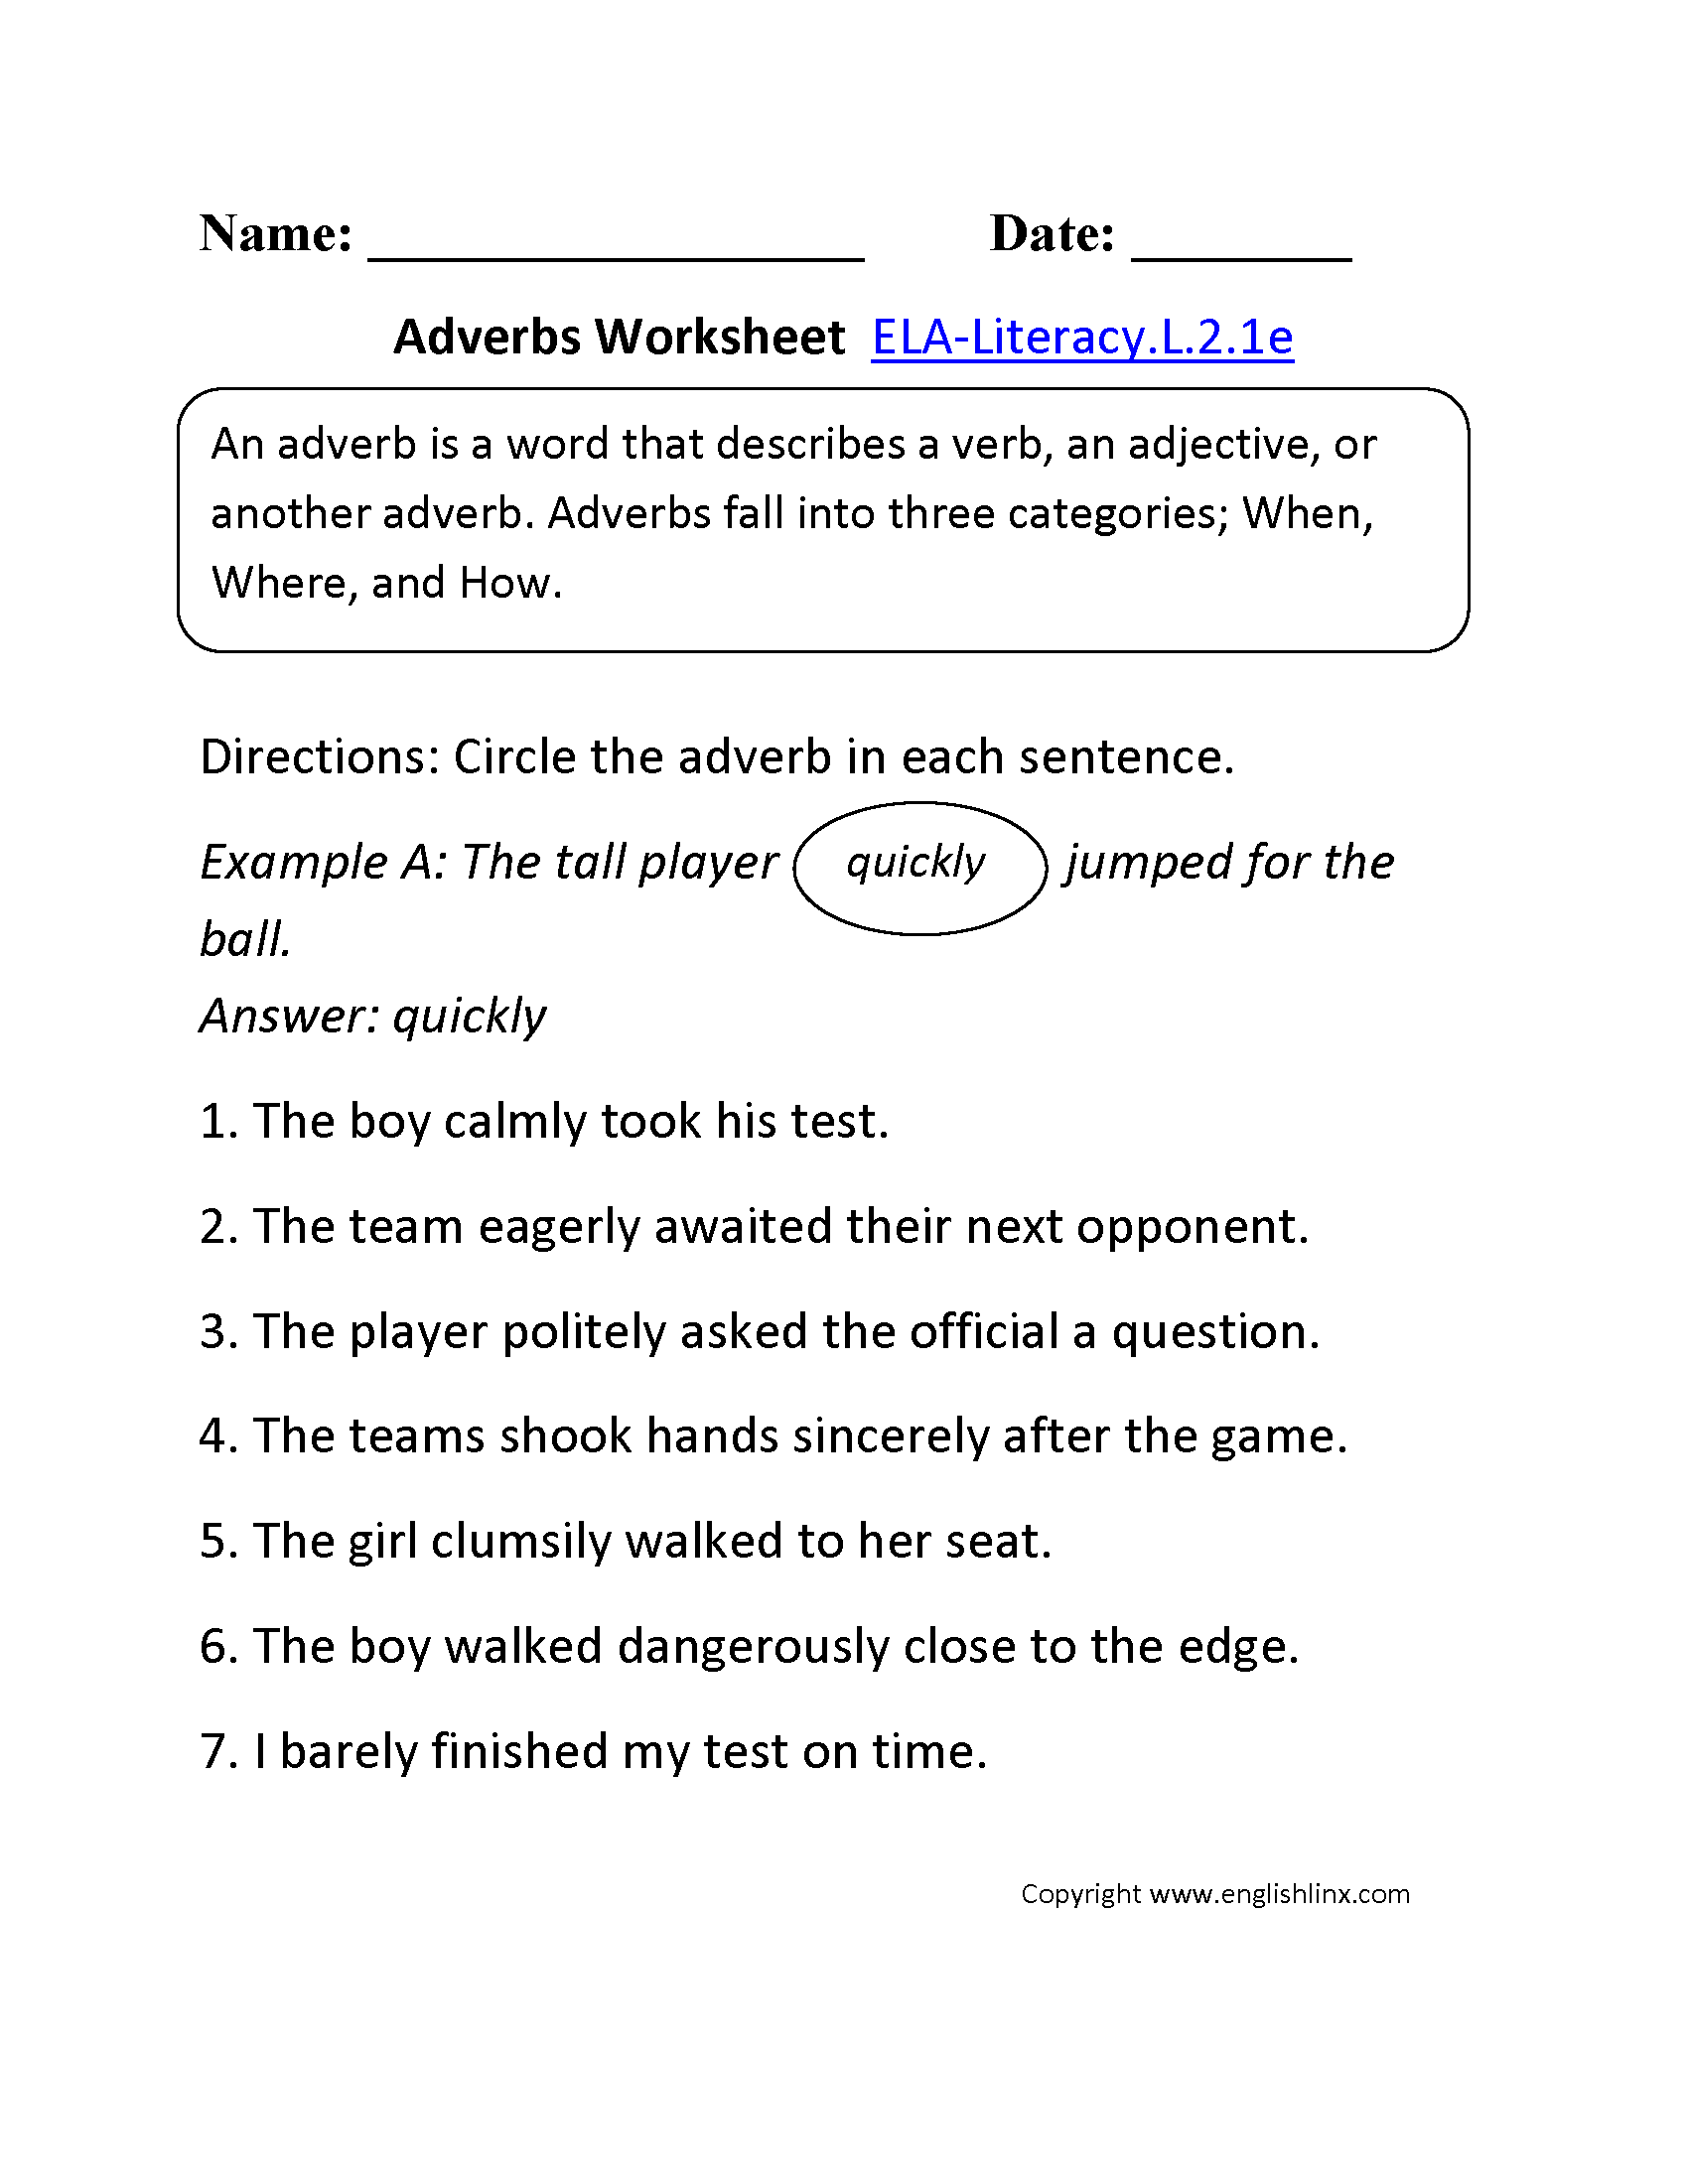 Worksheet Adverb Worksheets For Grade 1 2nd grade common core language worksheets adverbs worksheet 1 ela literacy l 2 1e worksheet